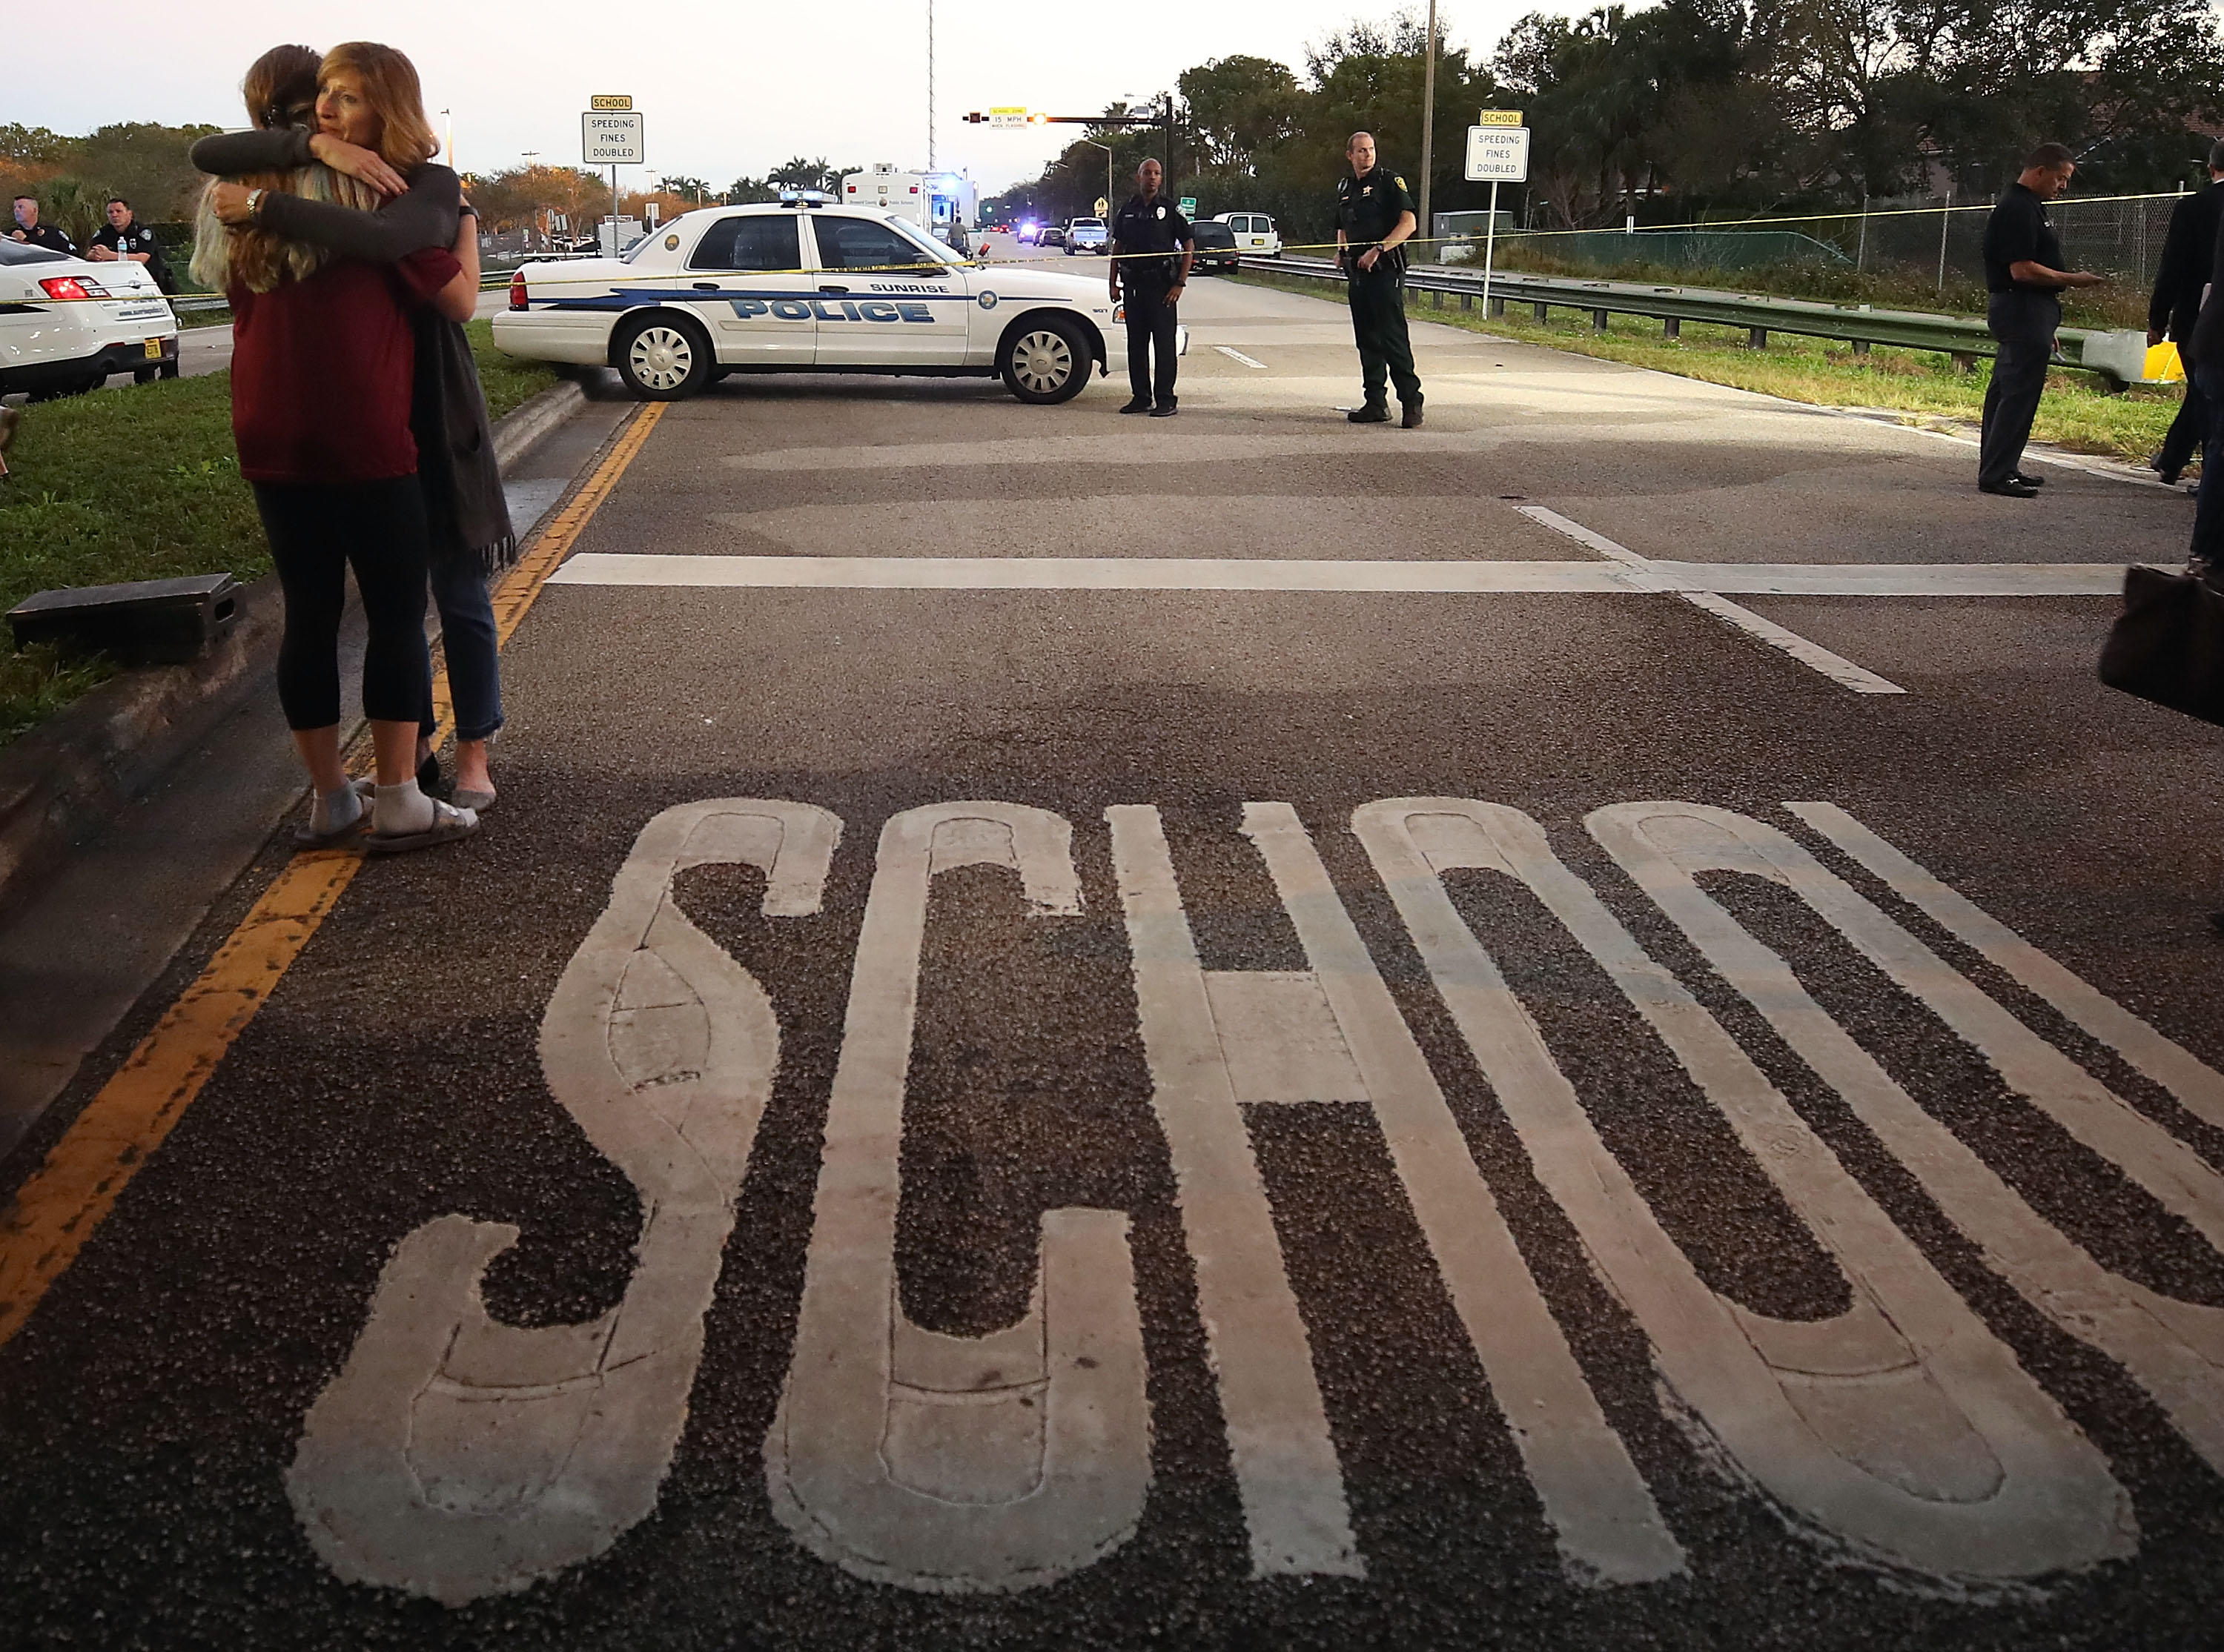 Two women hug at a police checkpoint near Marjory Stoneman Douglas High School, where 17 people were killed by a gunman Wednesday.